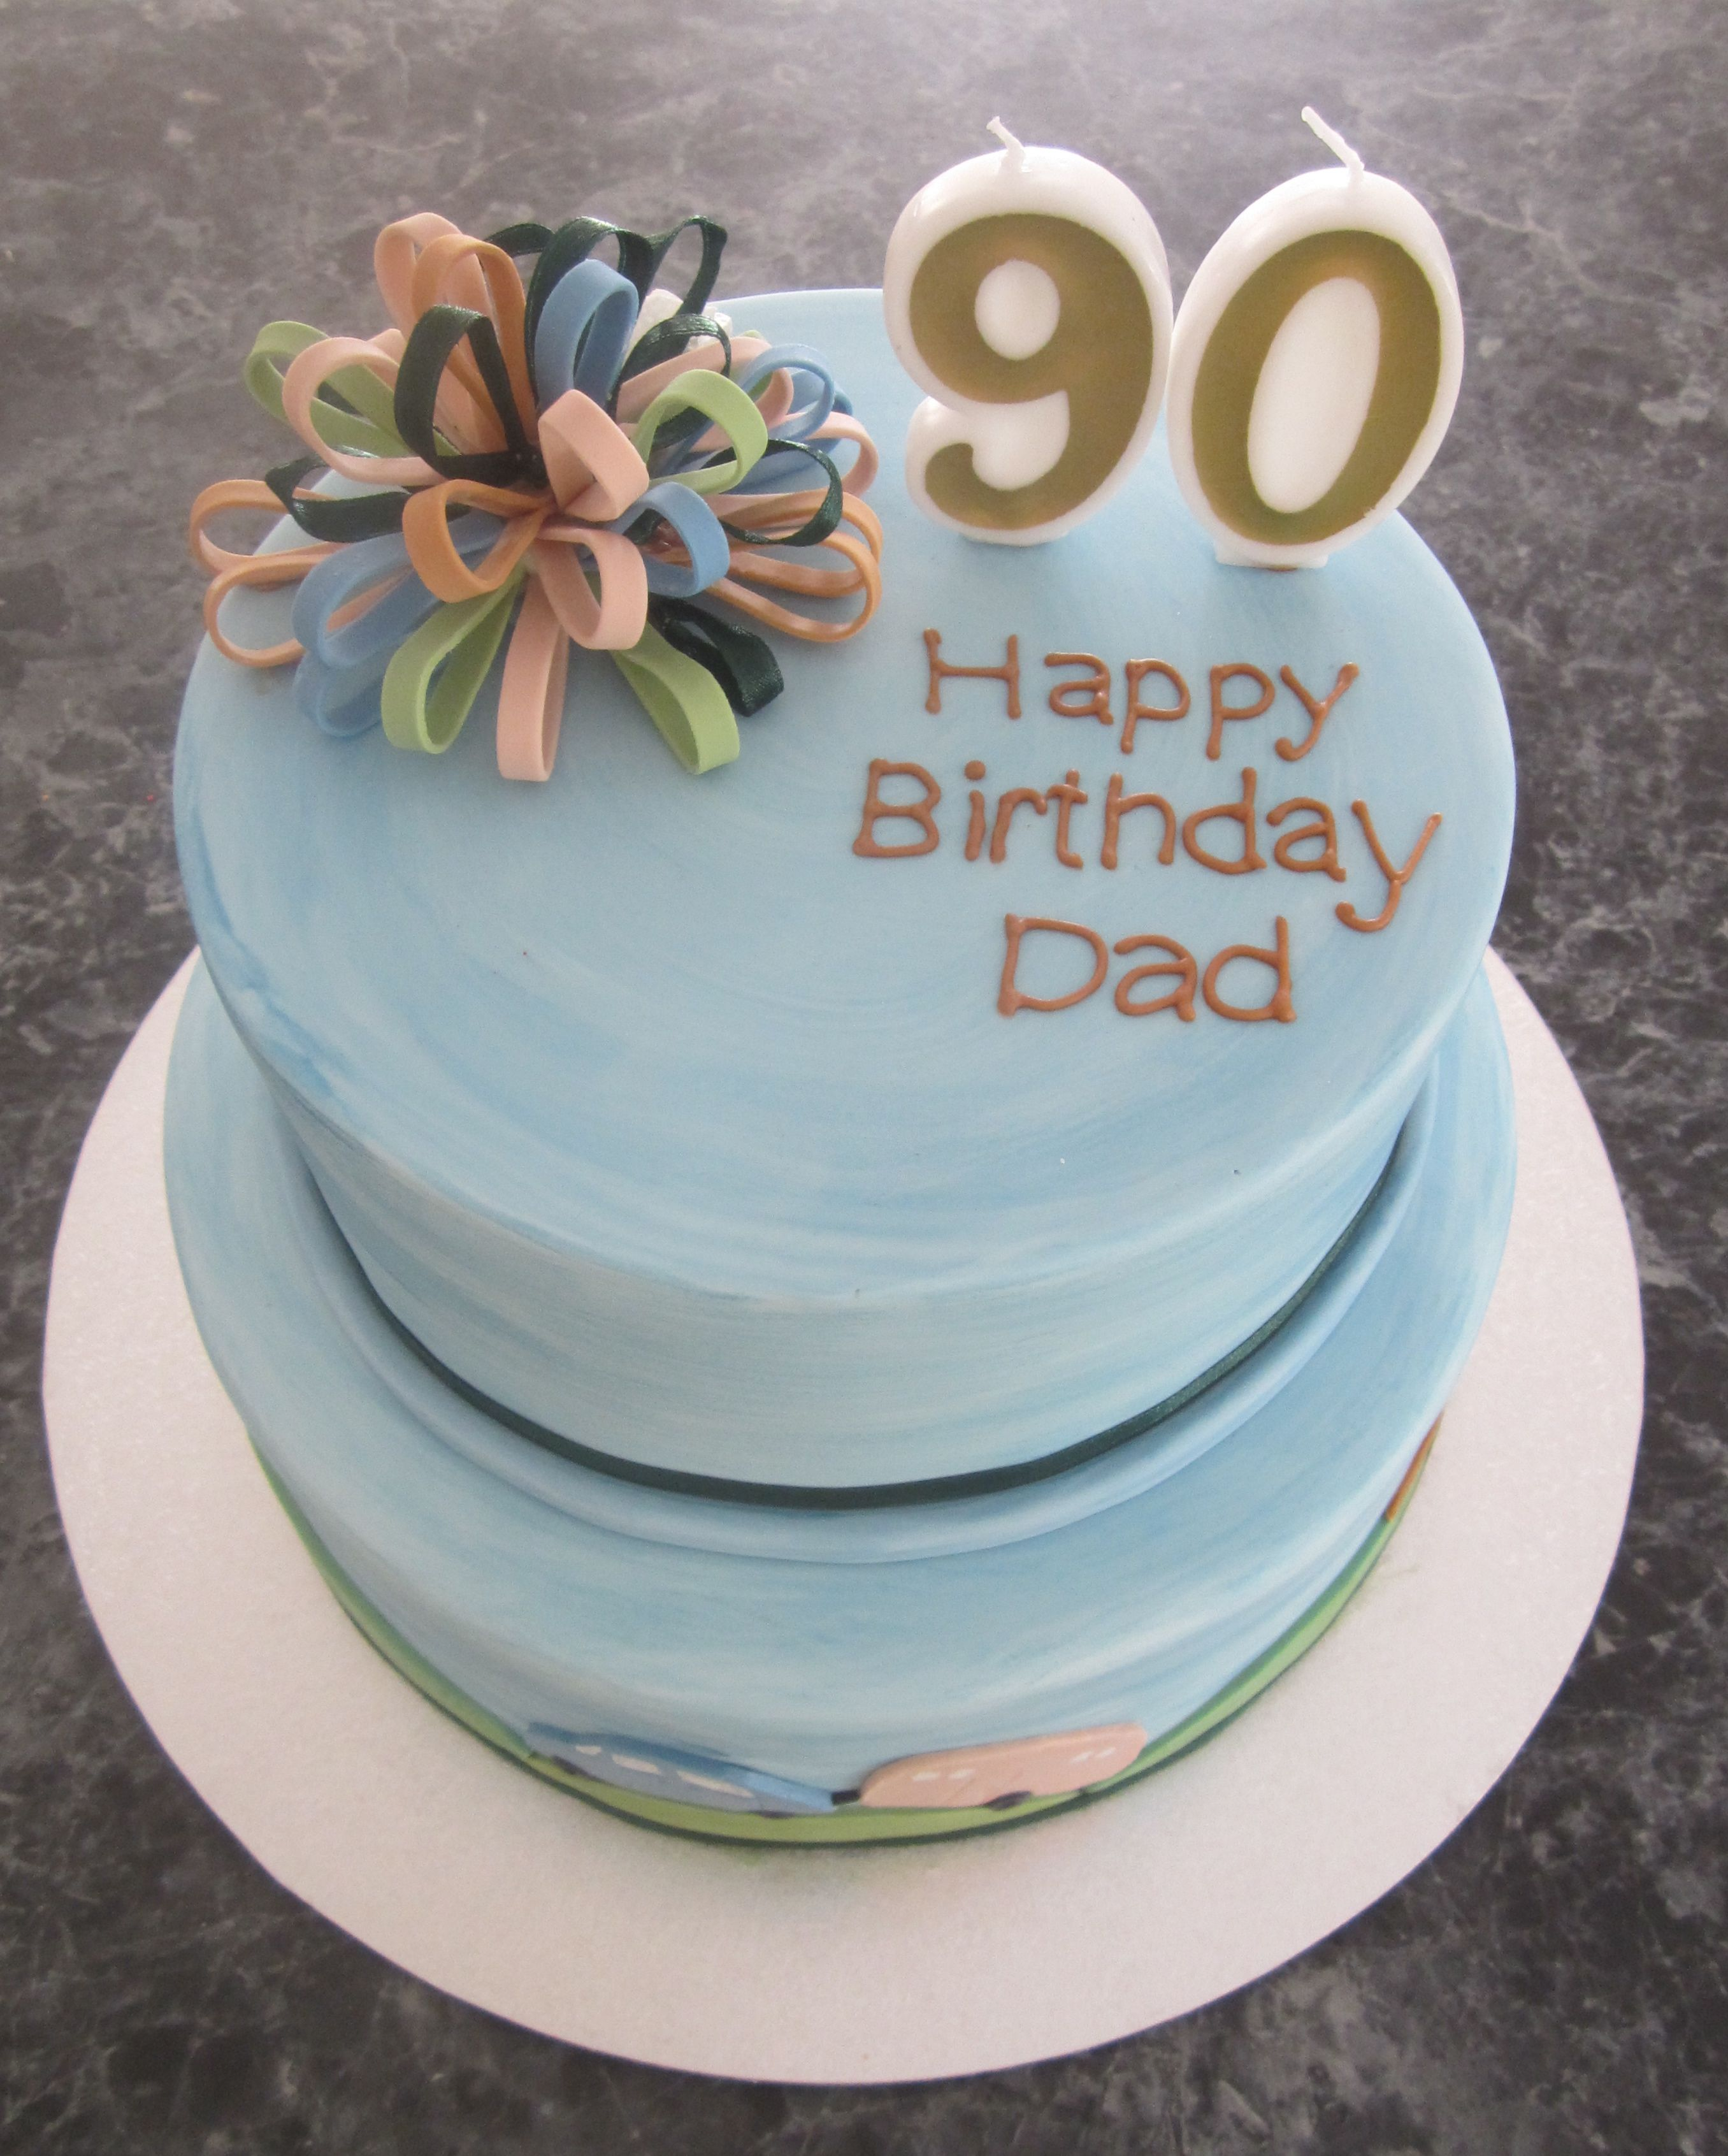 Image Result For Male 90th Birthday Cake With Images 90th